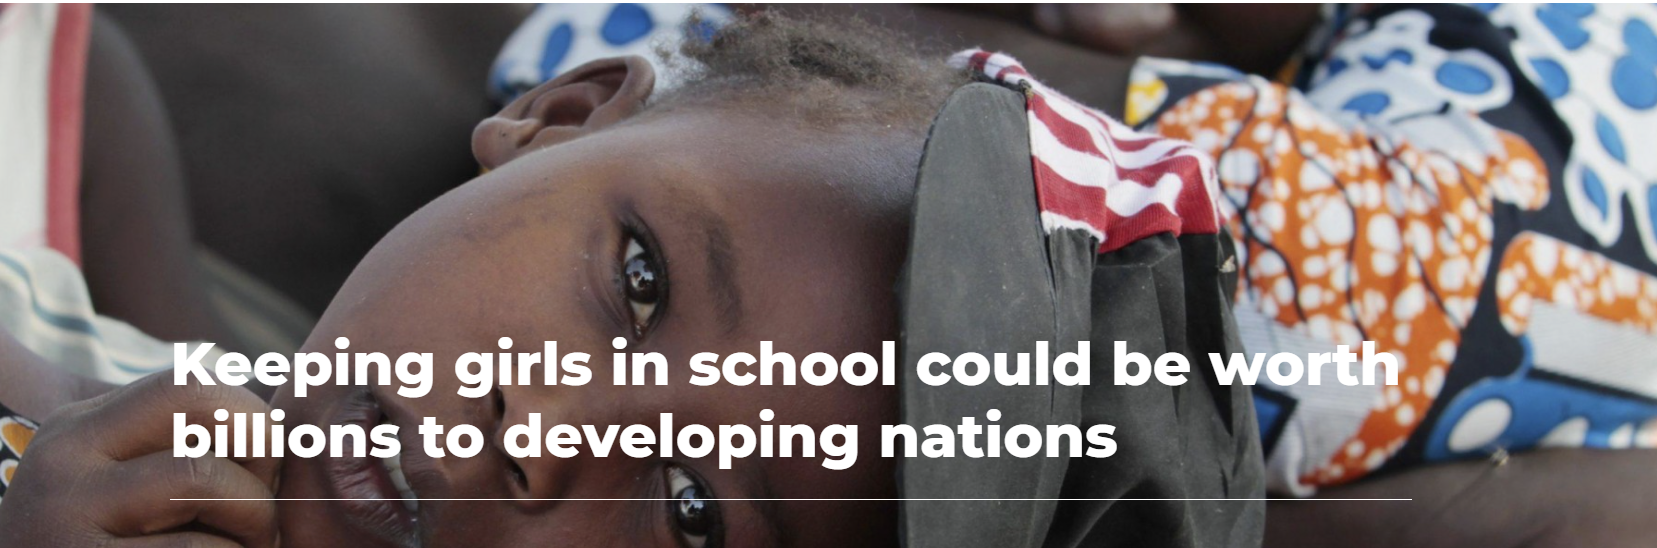 Keeping girls in school could be worth billions to developing nations